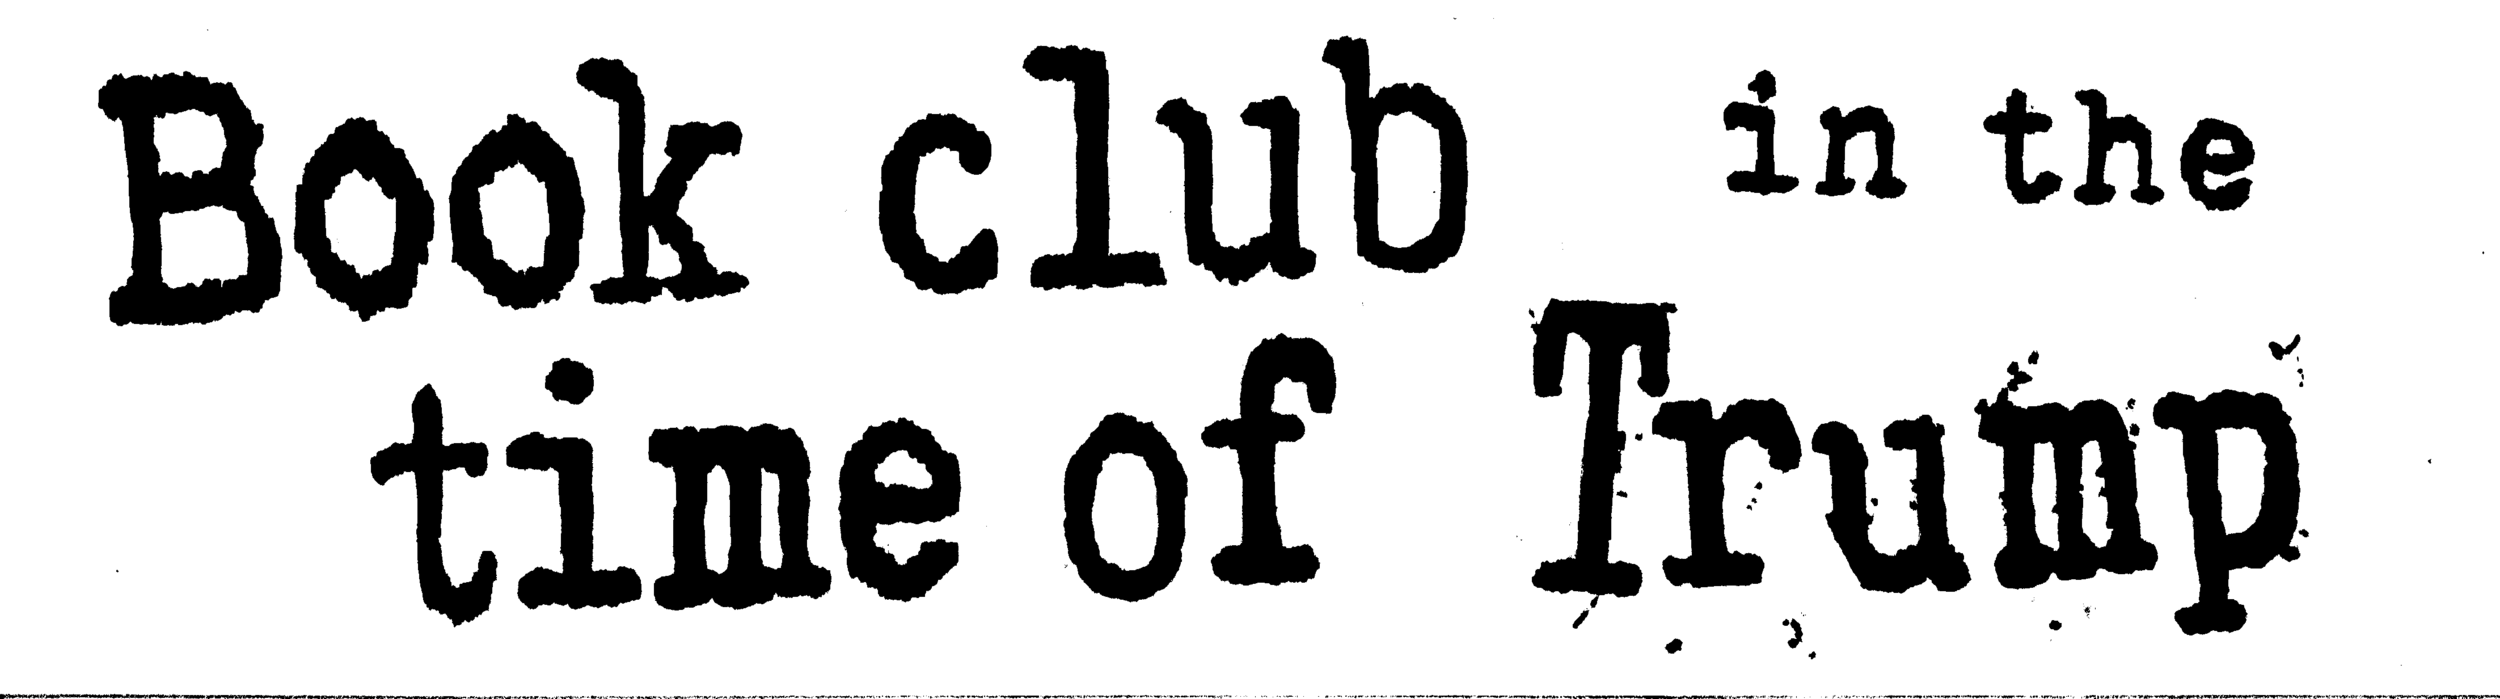 Tiffani Gomez  [Image description: a banner of black text on a white background that says 'Book Club in the Time of Trump]